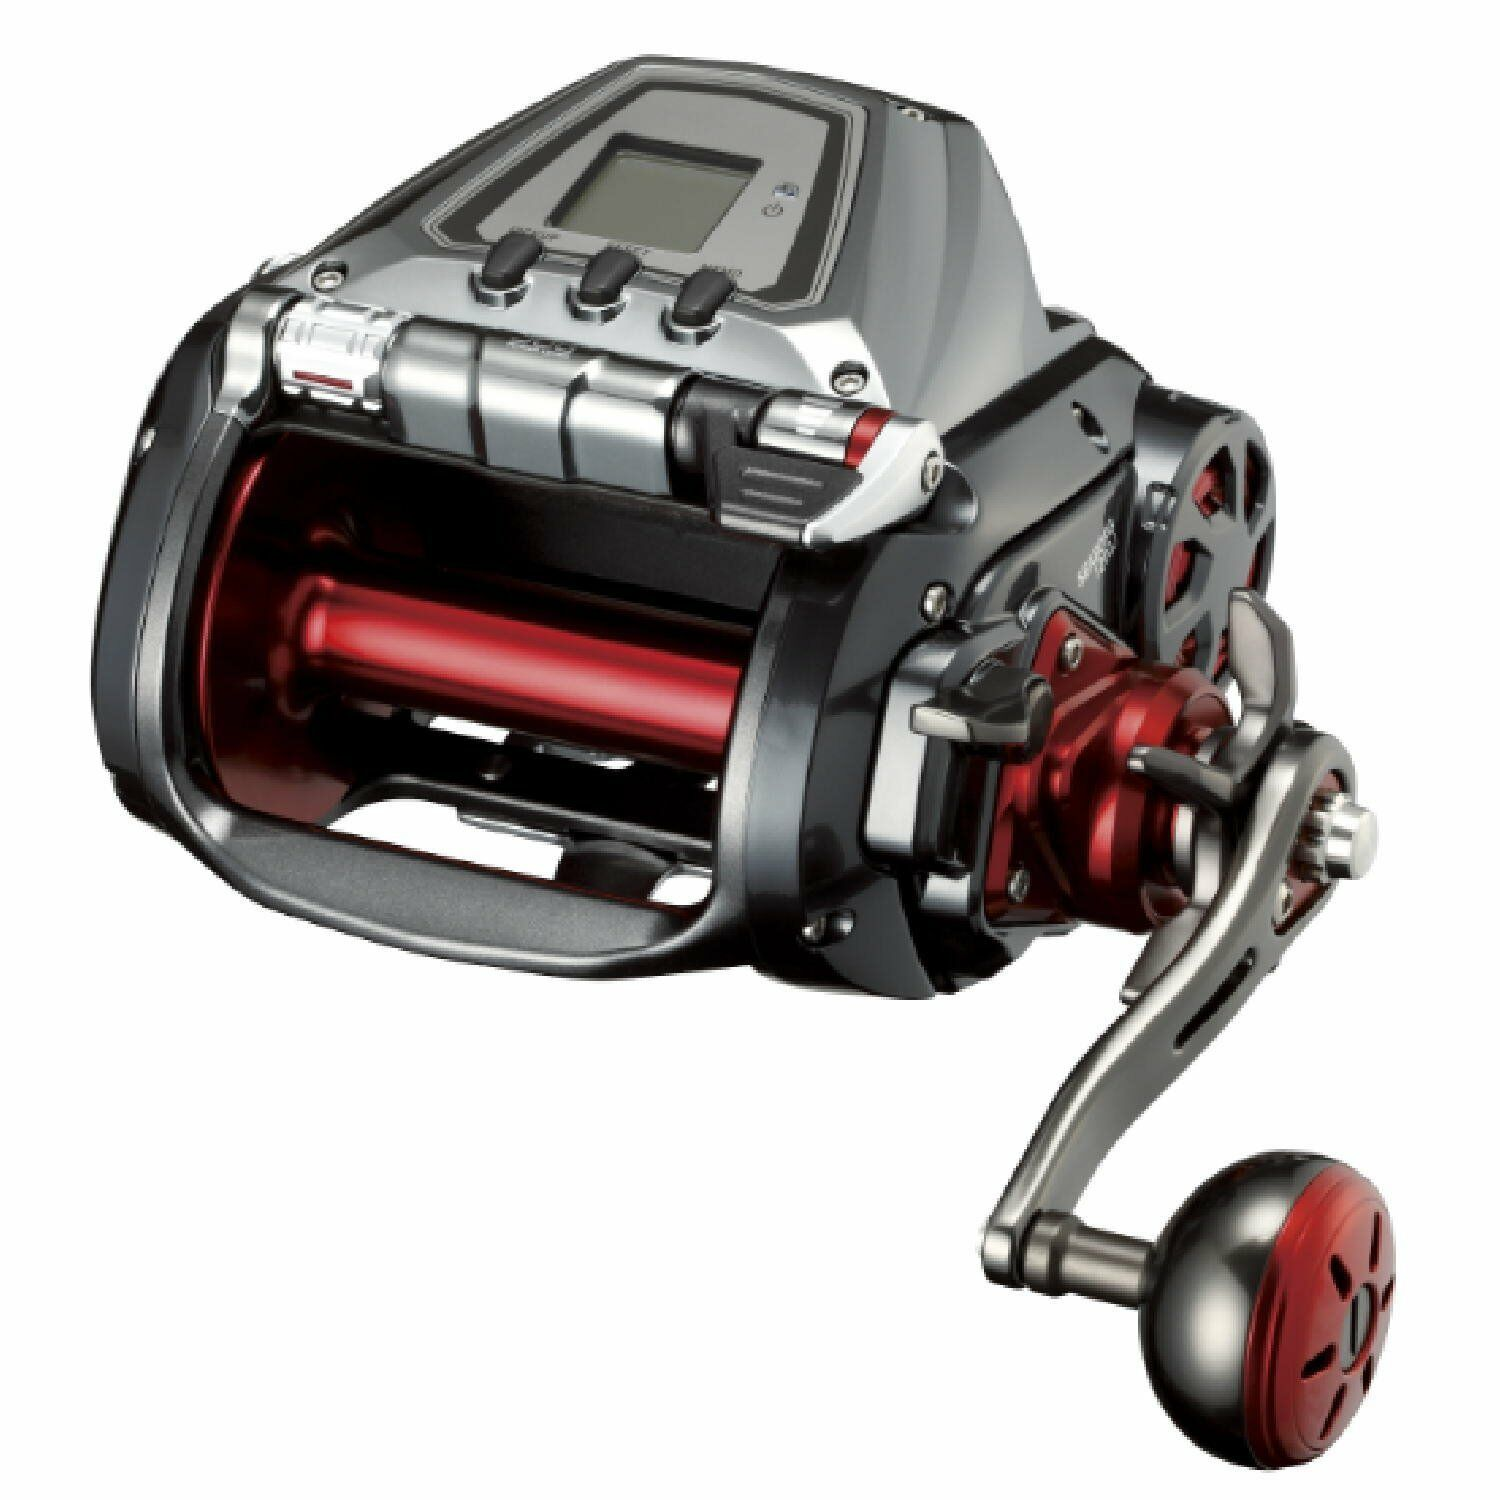 Daiwa 18 SEABORG 1200J English Display Electric Reel Saltwater Fishing NEW JAPAN